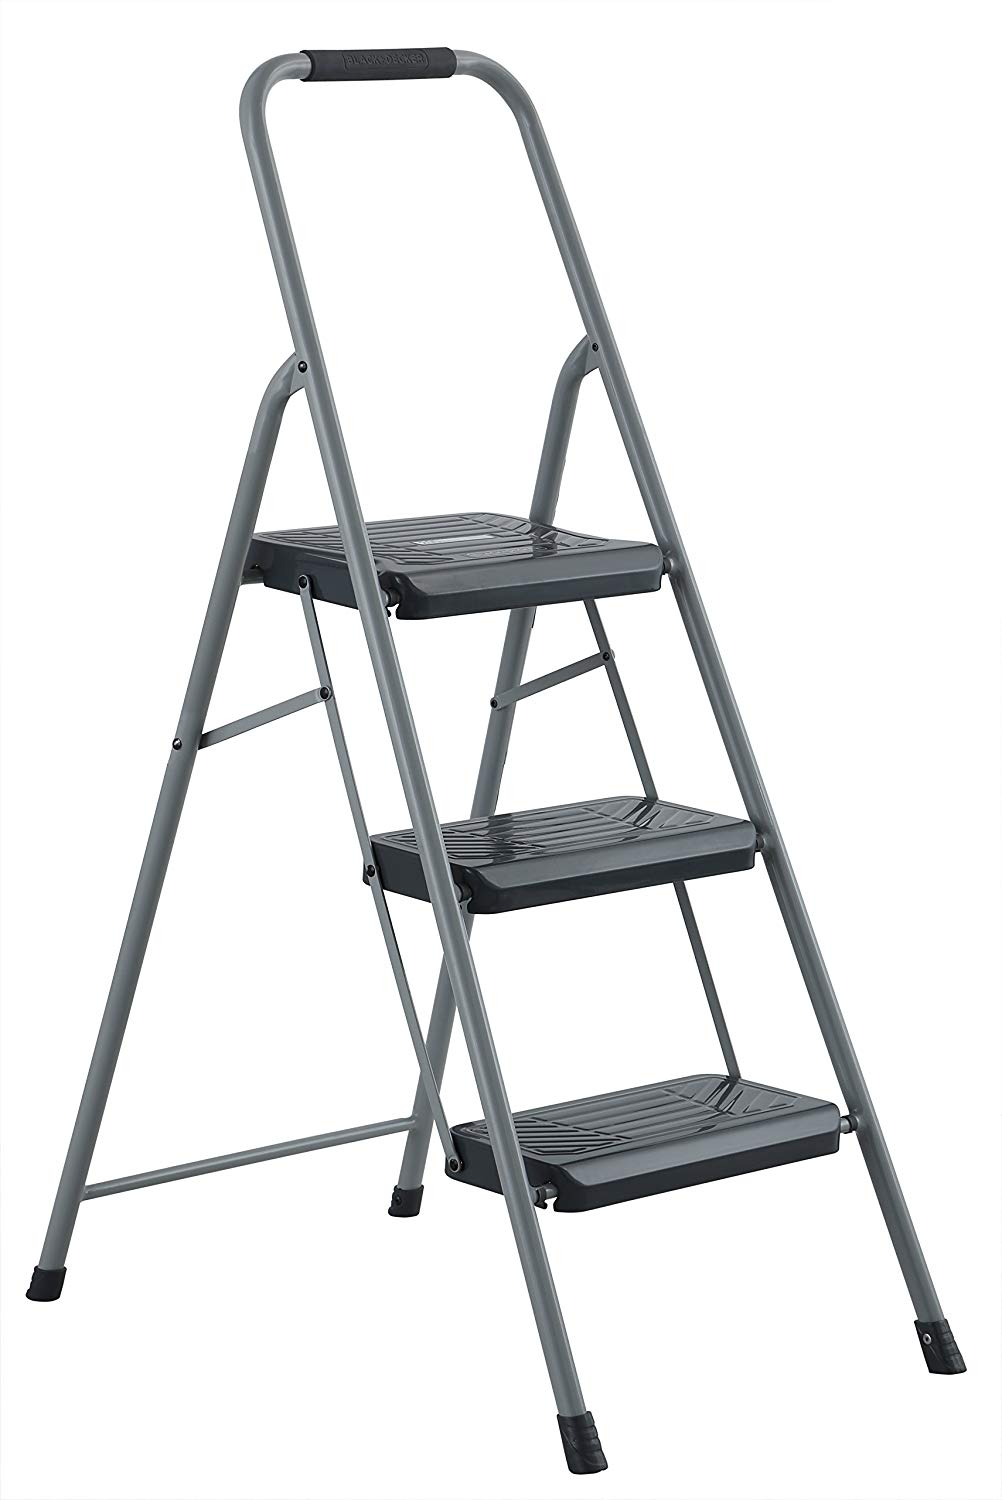 Step Stool - Steel, 3 step